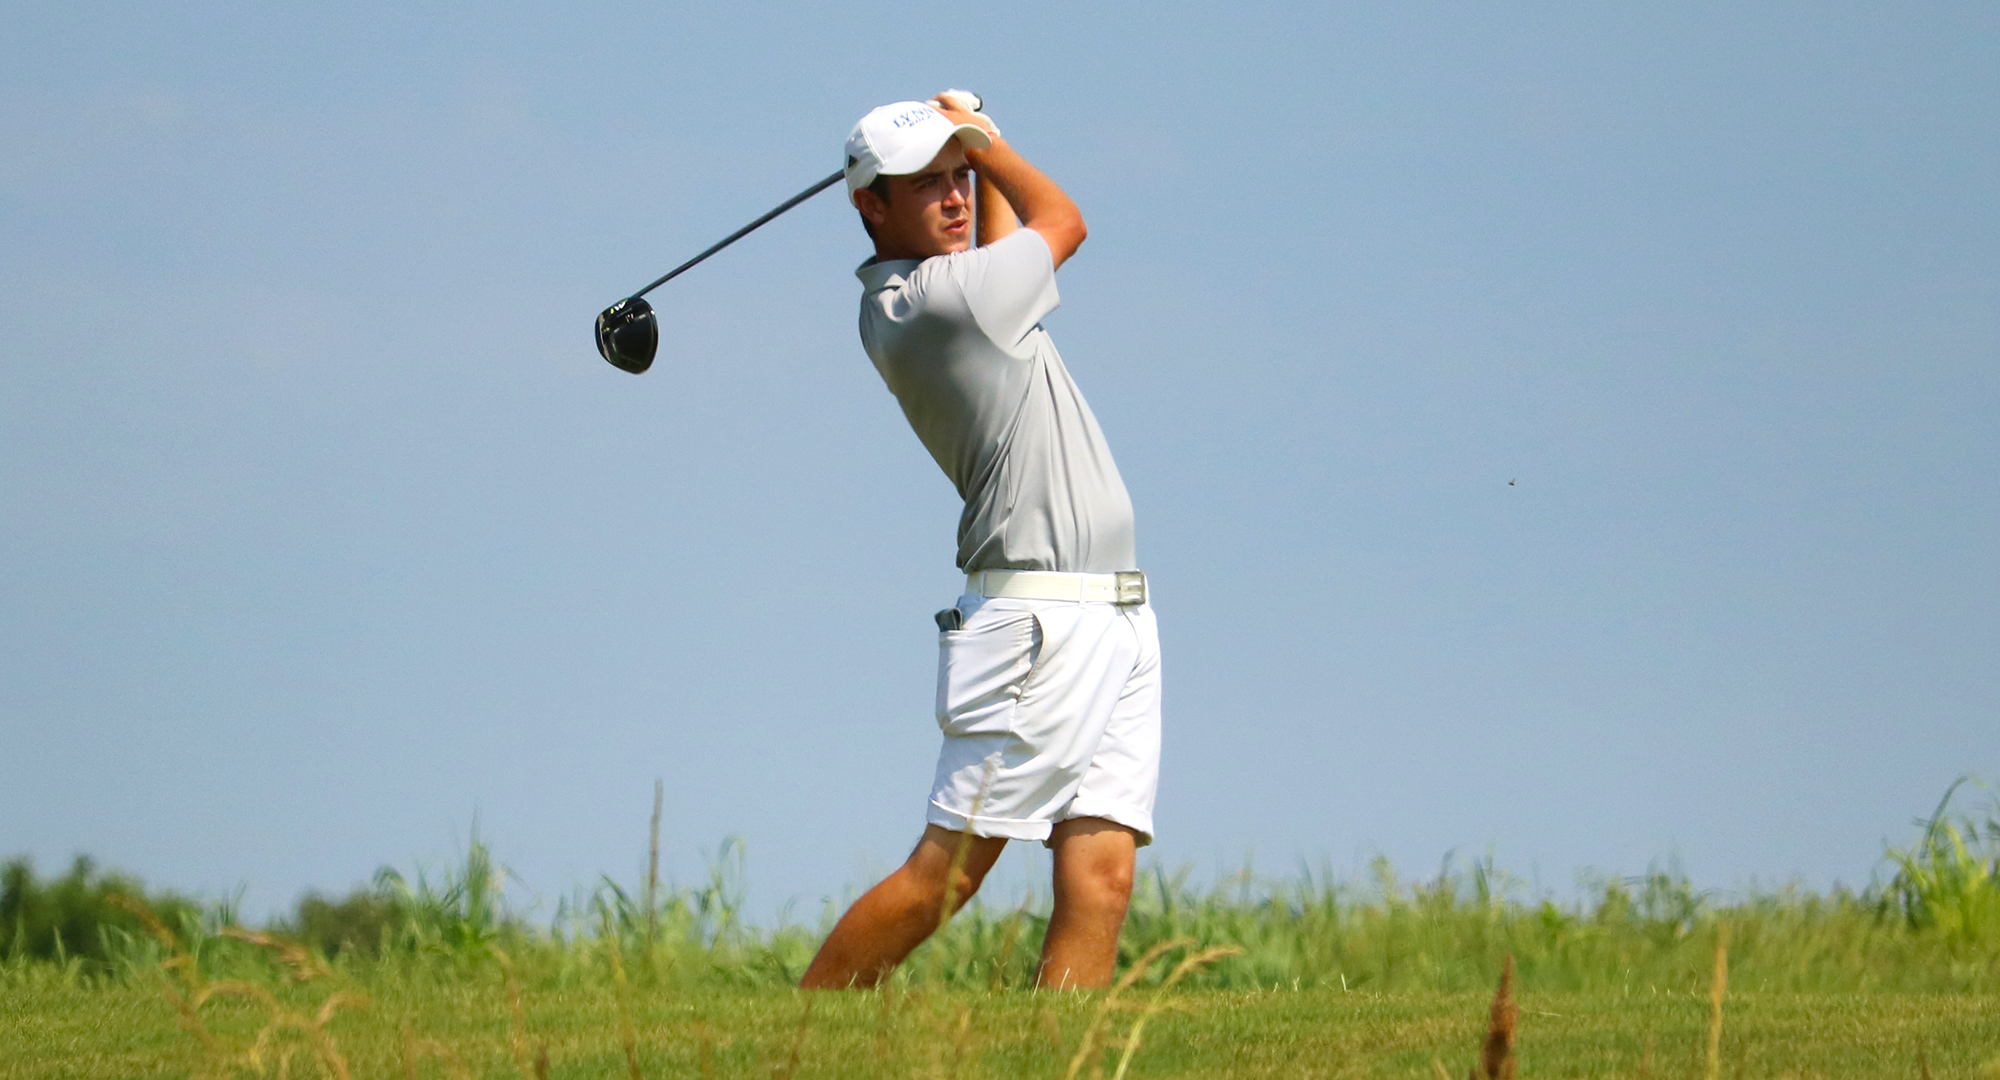 Men's Golf Tied for Eighth at Copperhead Championship